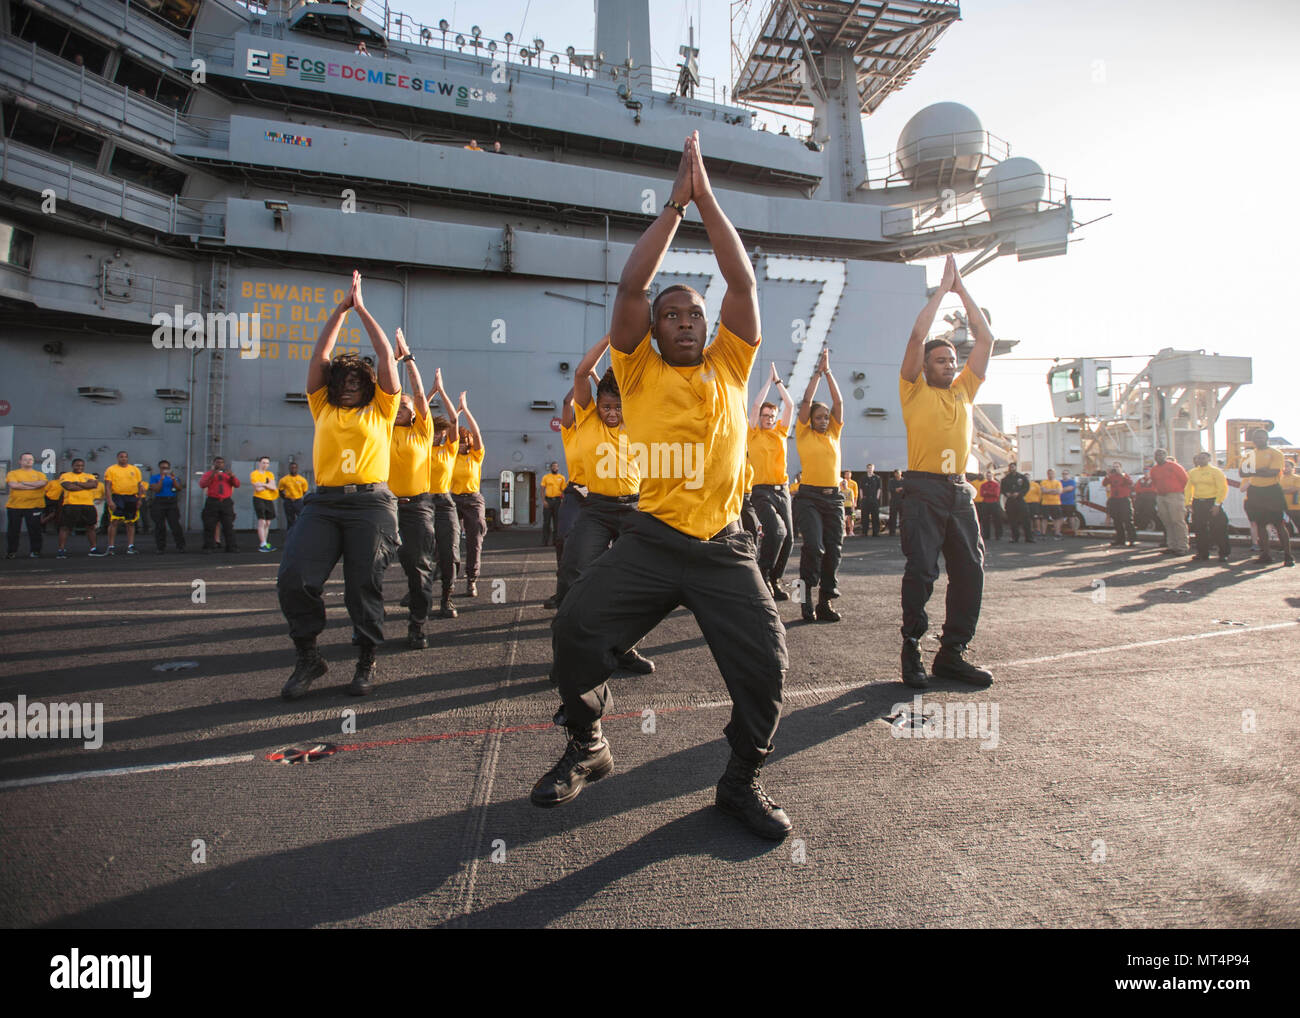 170722-N-ME396-068 MEDITERRANEAN SEA (July 22, 2017) The 77 PSI step team performs before the Suicide Prevention and Awareness Month 5K run aboard the aircraft carrier USS George H.W. Bush (CVN 77). The ship and its carrier strike group are conducting naval operations in the U.S. 6th Fleet area of operations in support of U.S. national security interests in Europe and Africa. (U.S. Navy photo by Mass Communication Specialist 3rd Class Tristan B. Lotz/Released) - Stock Image